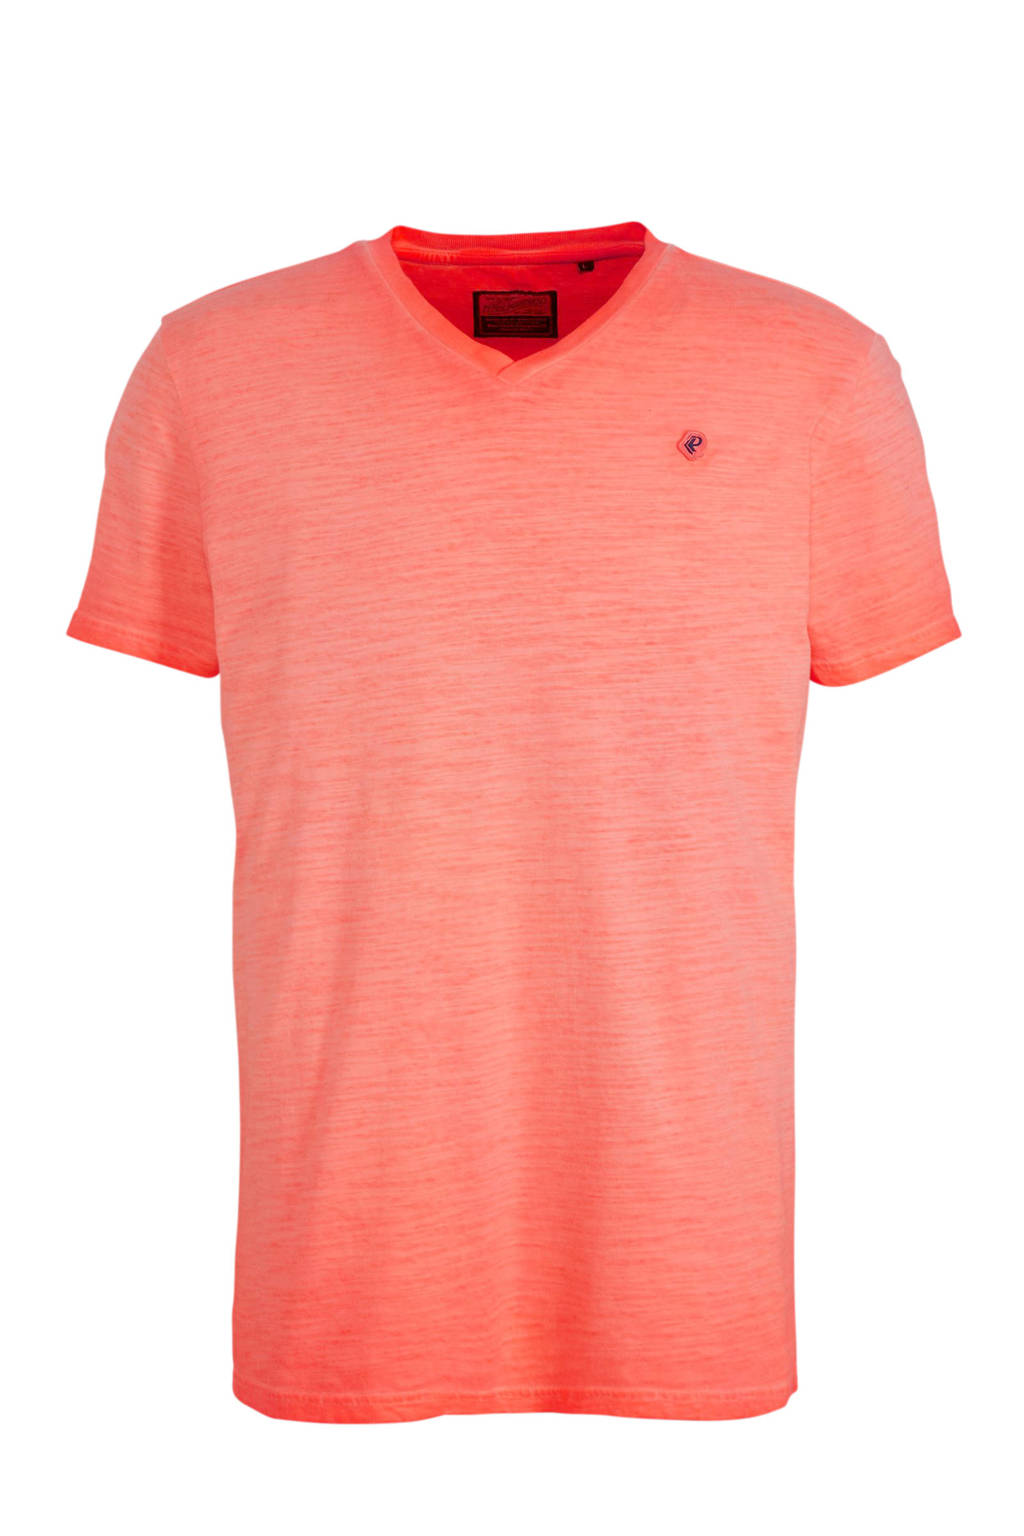 Petrol Industries T-shirt fiery coral, Fiery Coral